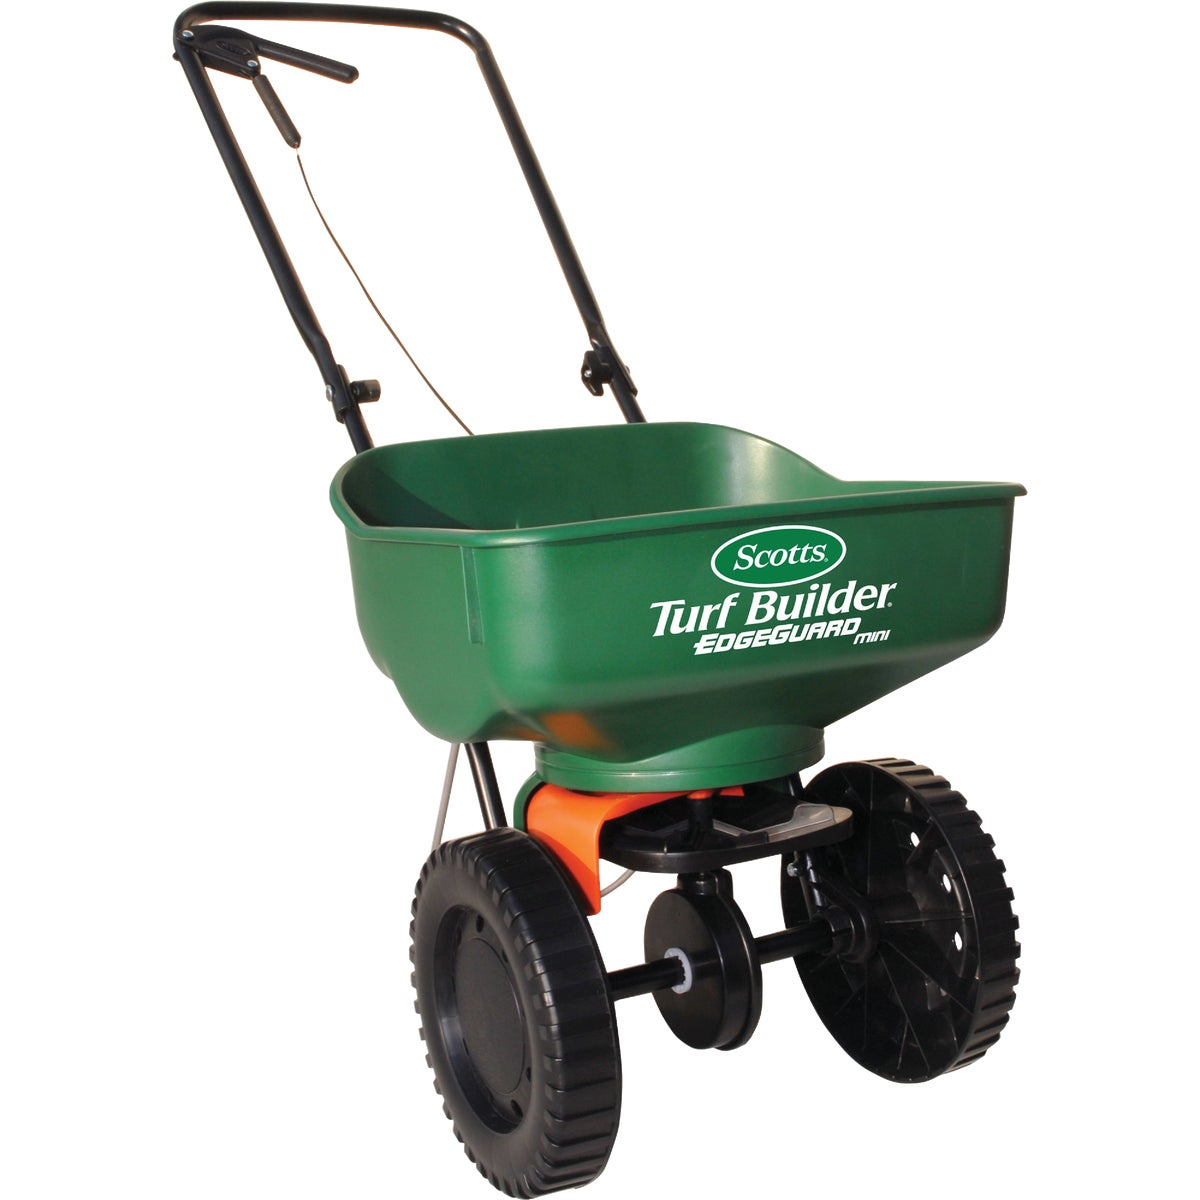 MINI LAWN SPREADER - 76121 by Scotts Company